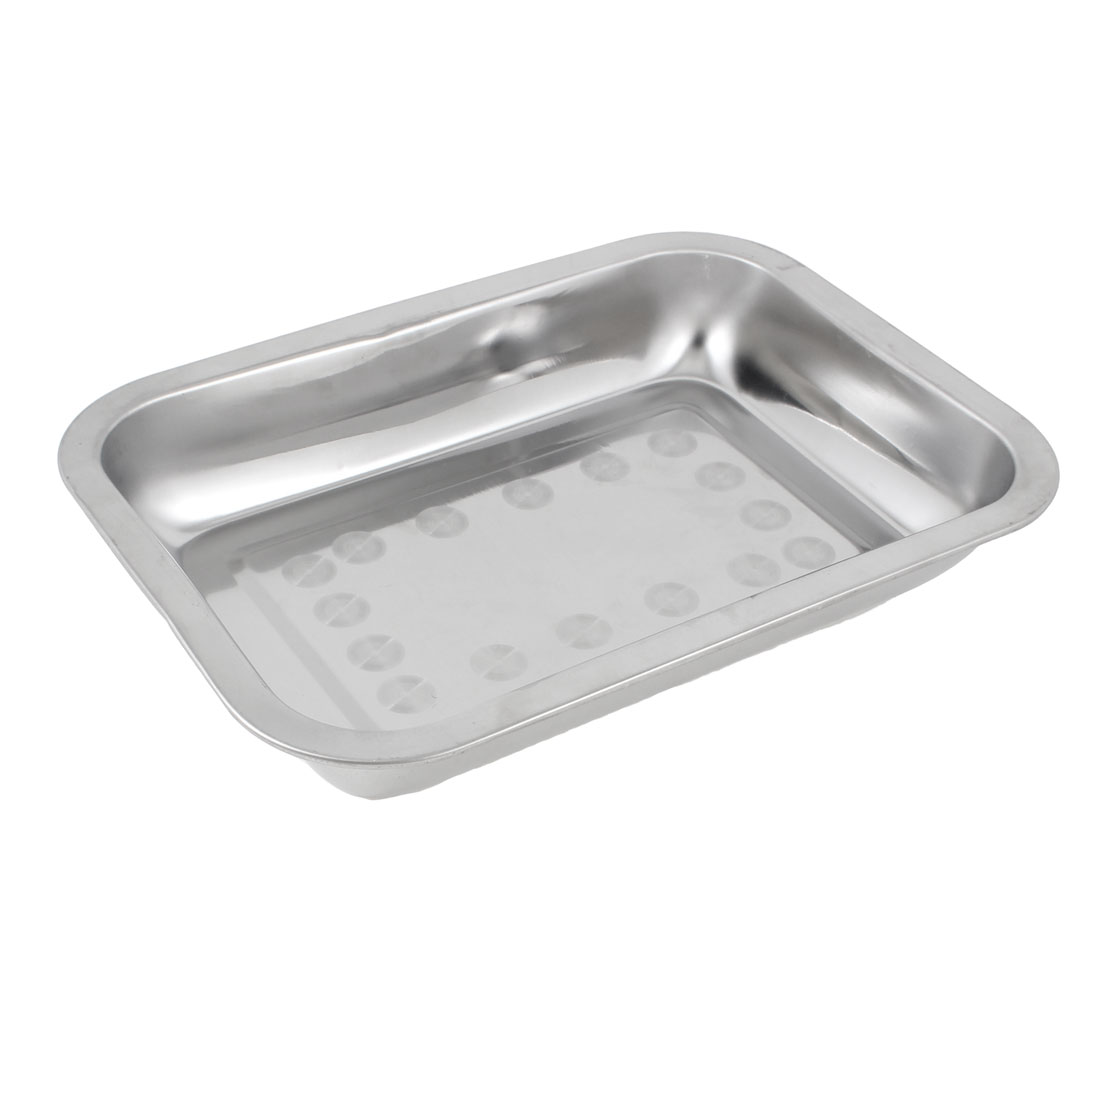 26cm x 19cm Rectangle Shape Stainless Steel Food Medicine Tray Plate